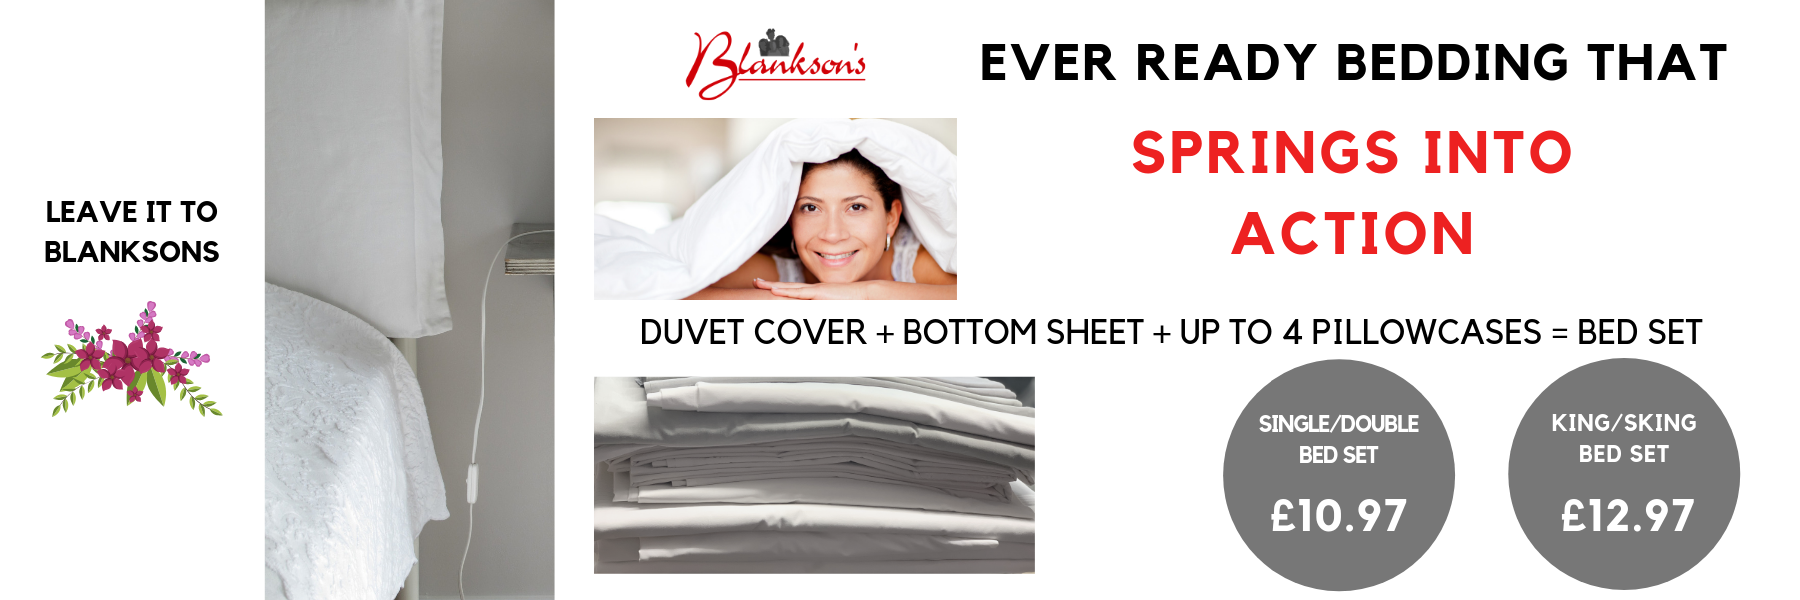 Laundry, Linen Hire, Ironing & Dry Cleaning